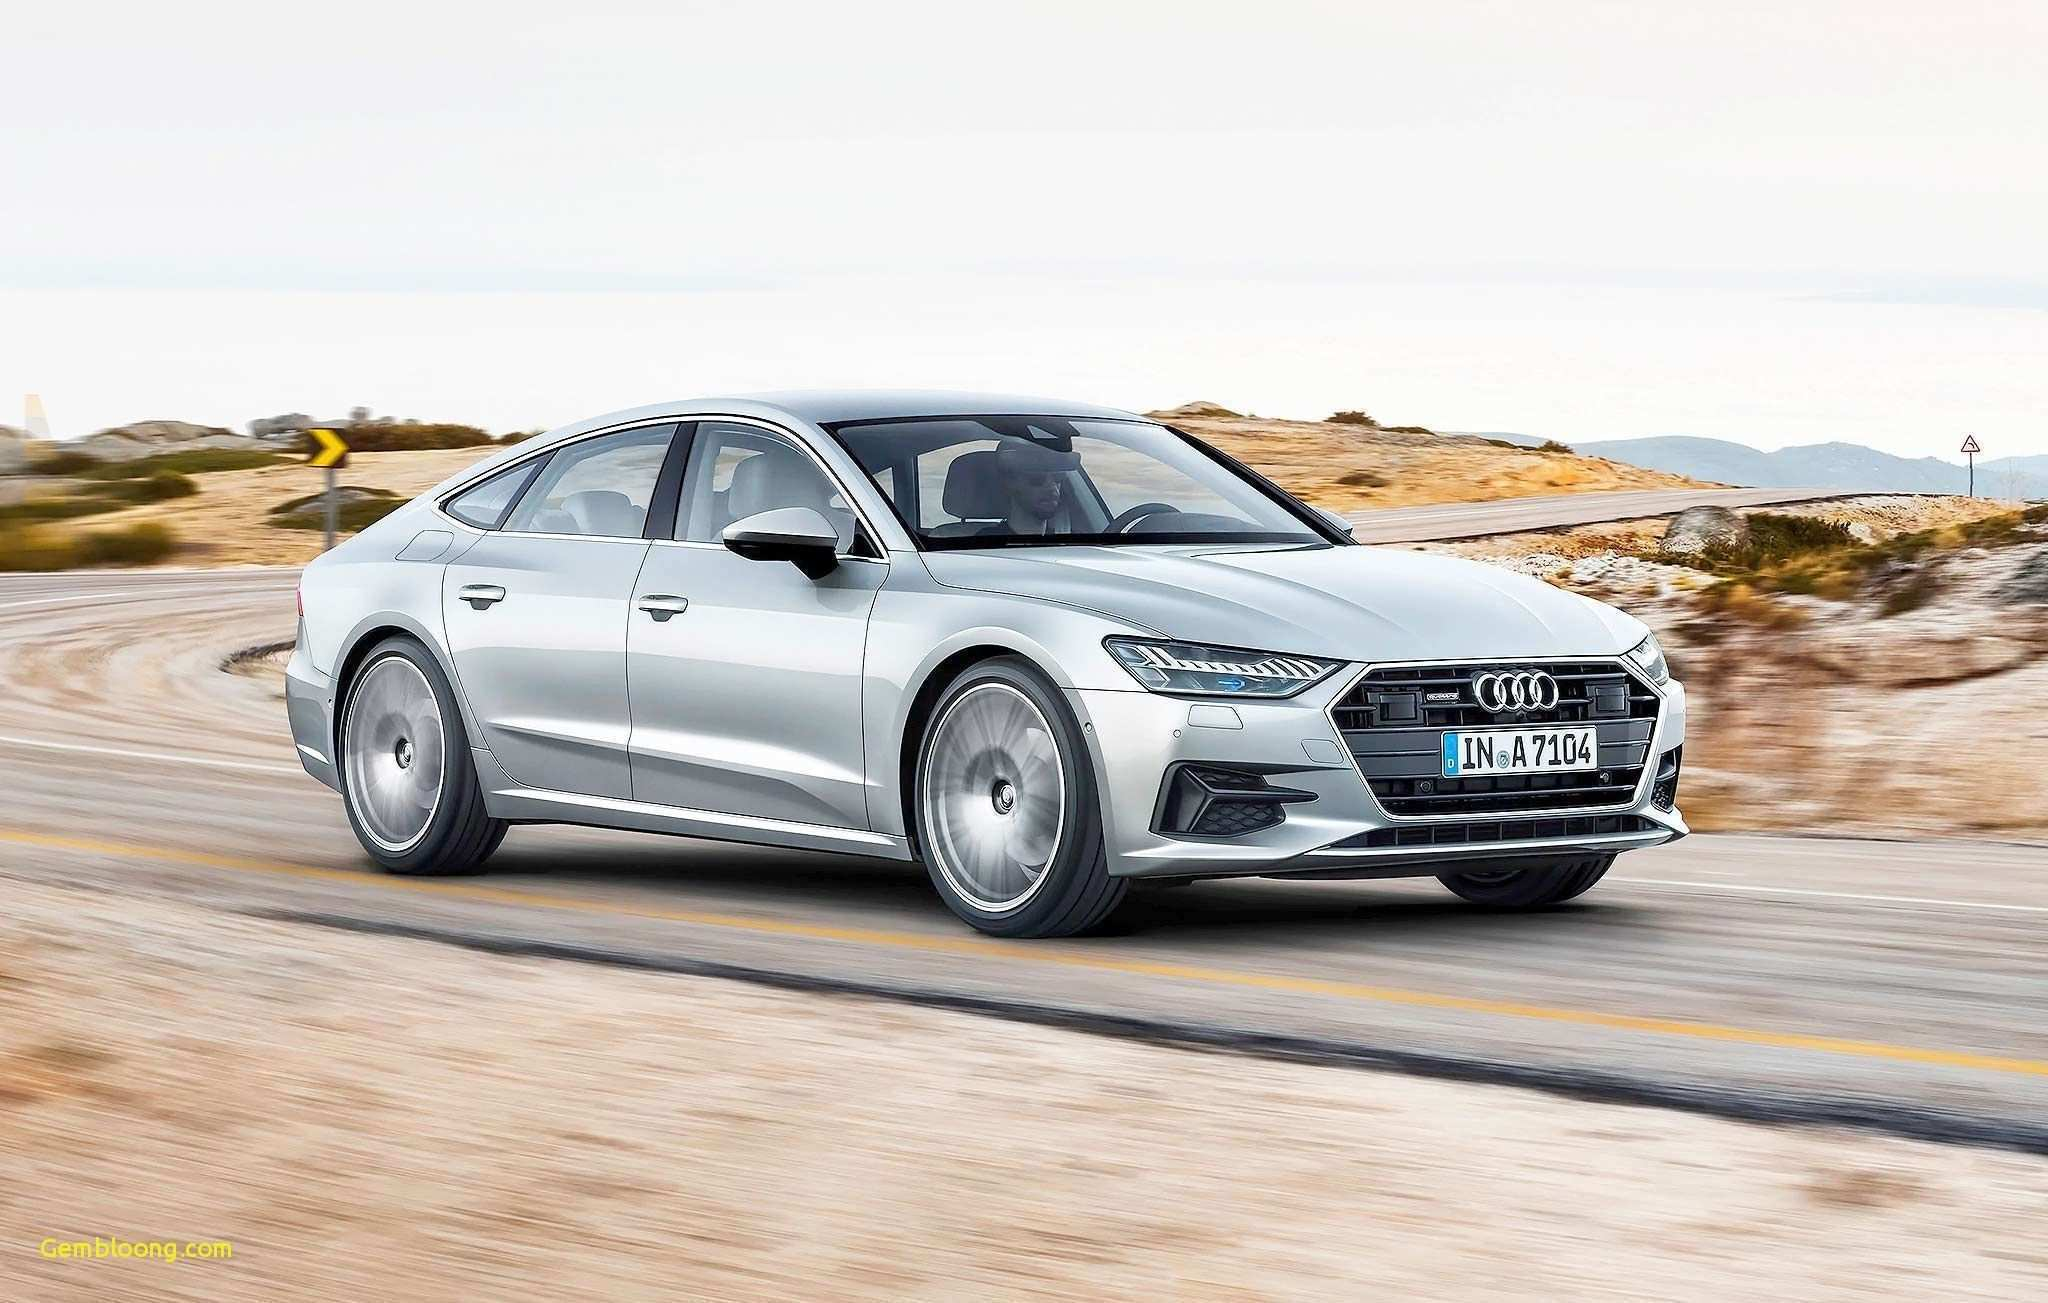 91 New 2020 Audi A7 Colors Release